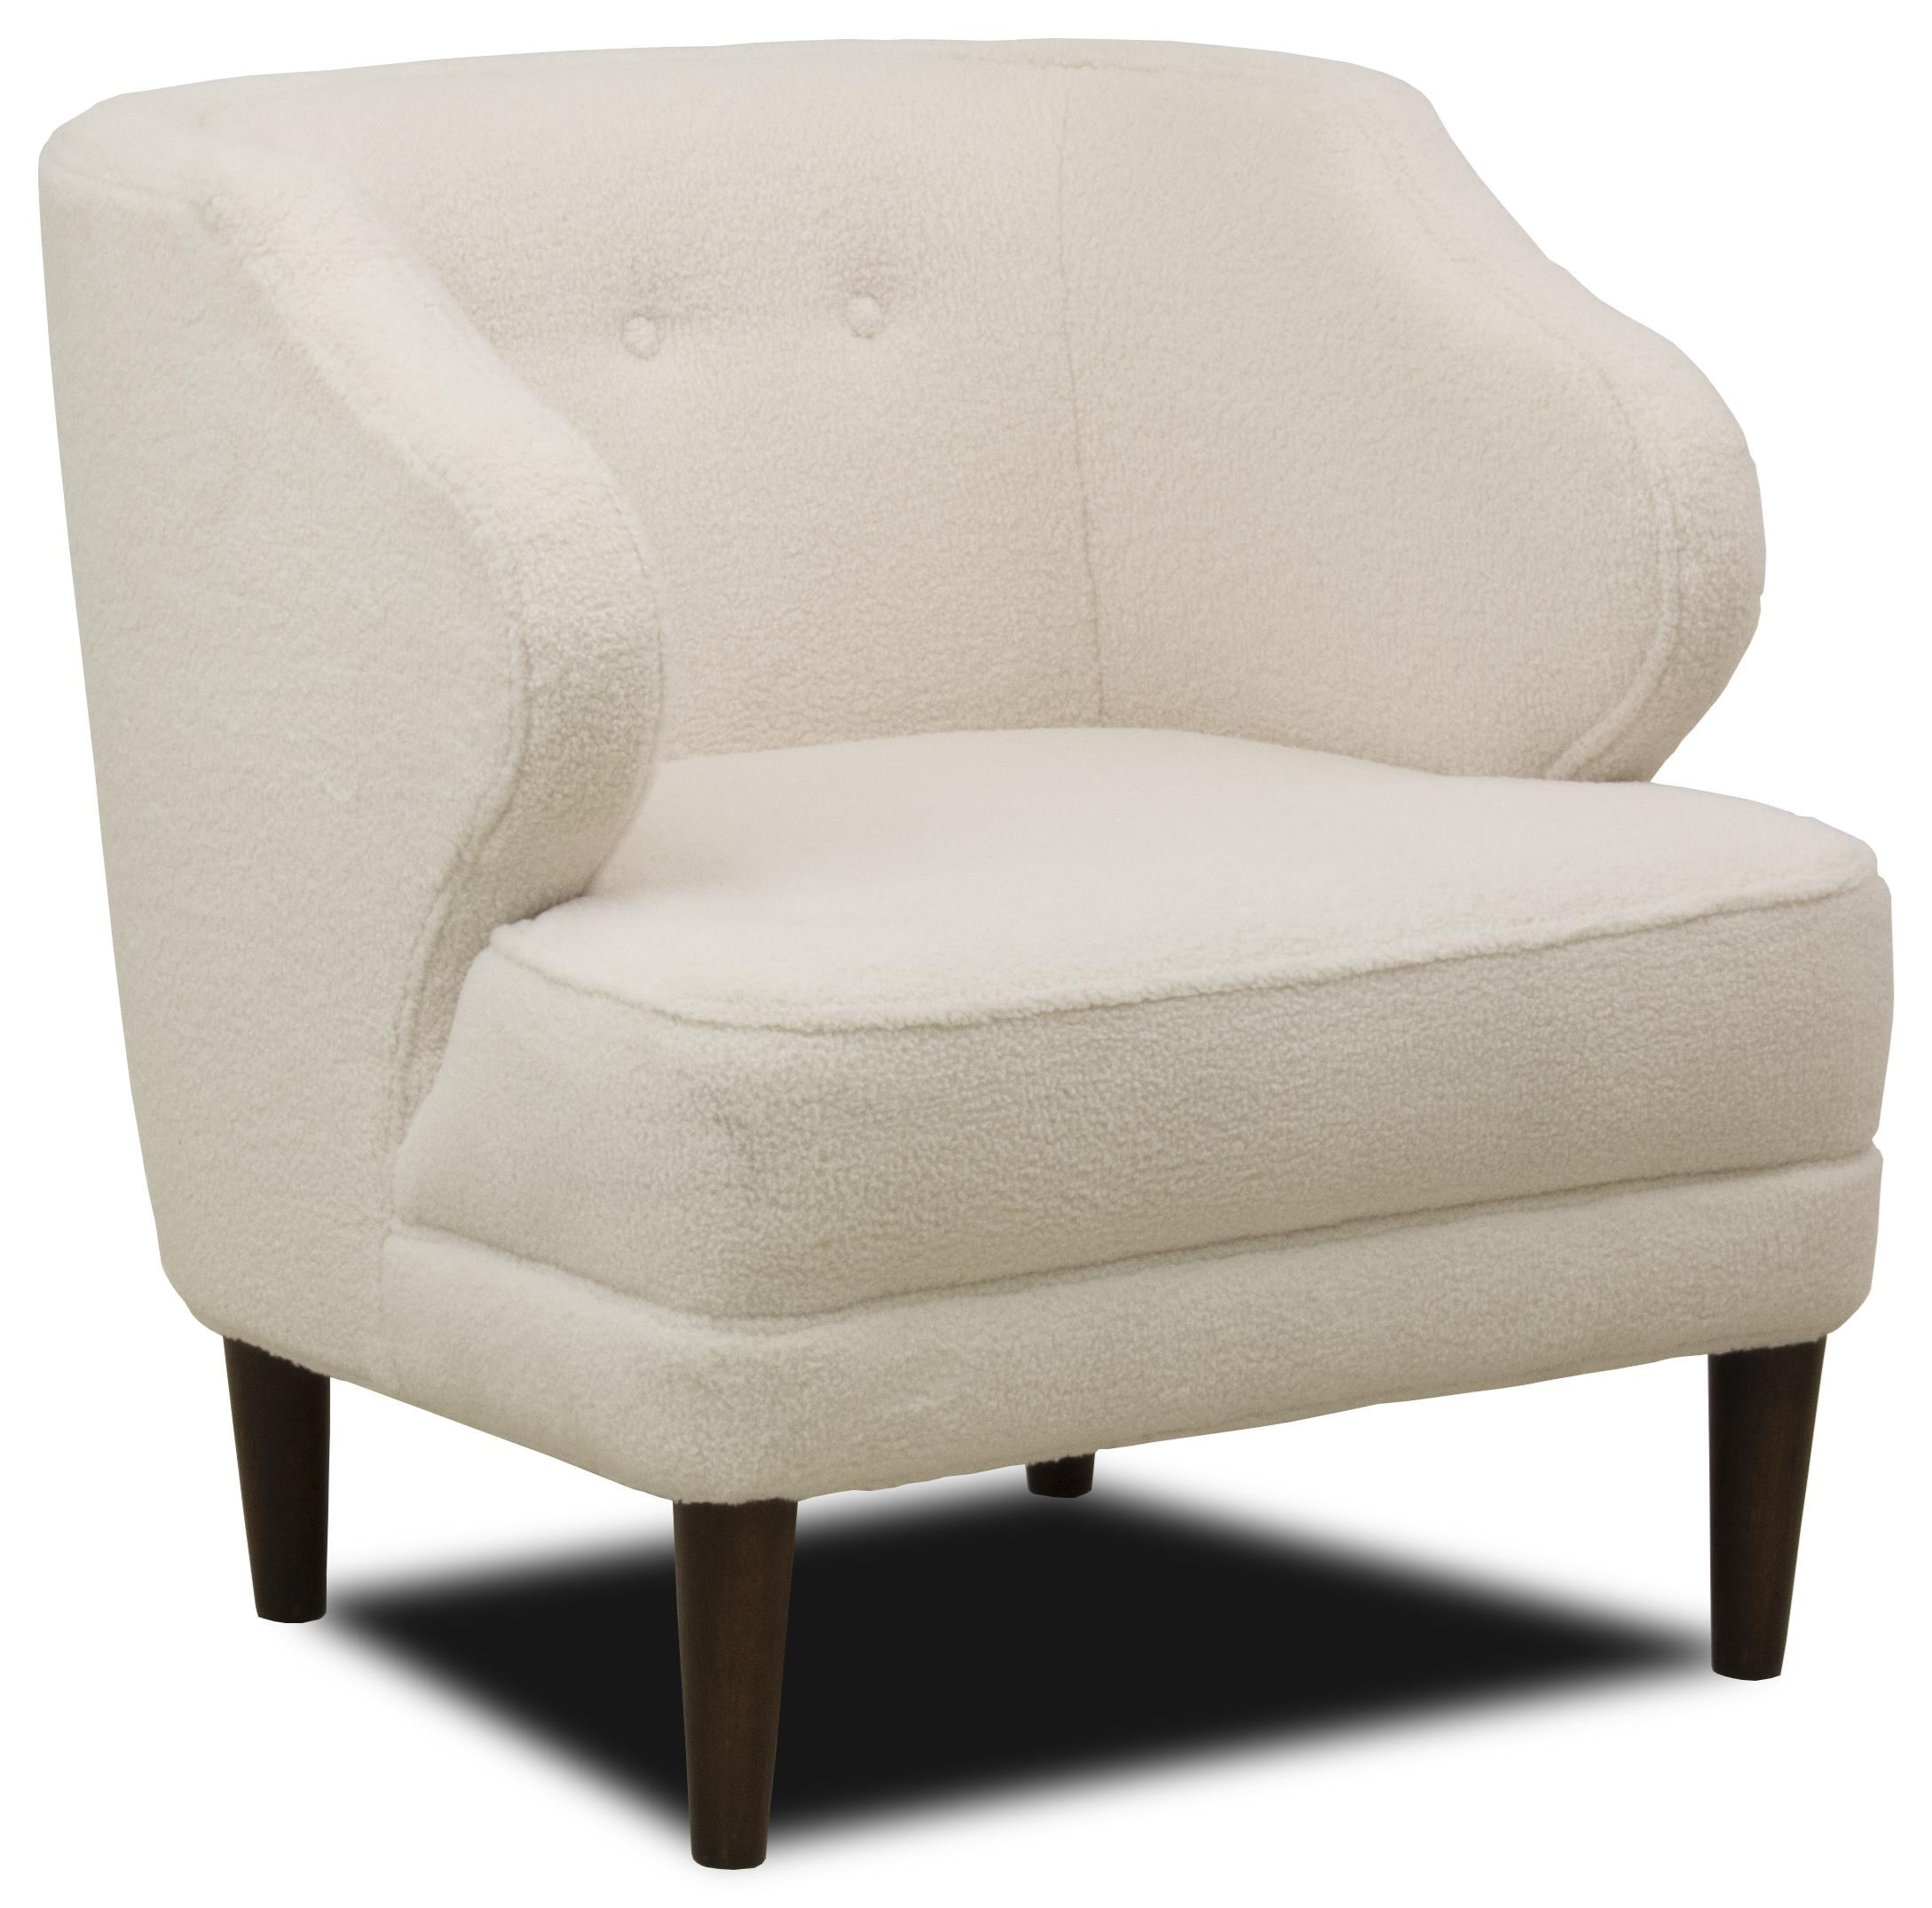 Modern Wing Chair Etta Mid Century Modern Wing Chair With Button Tufting By Flexsteel At Ruby Gordon Home